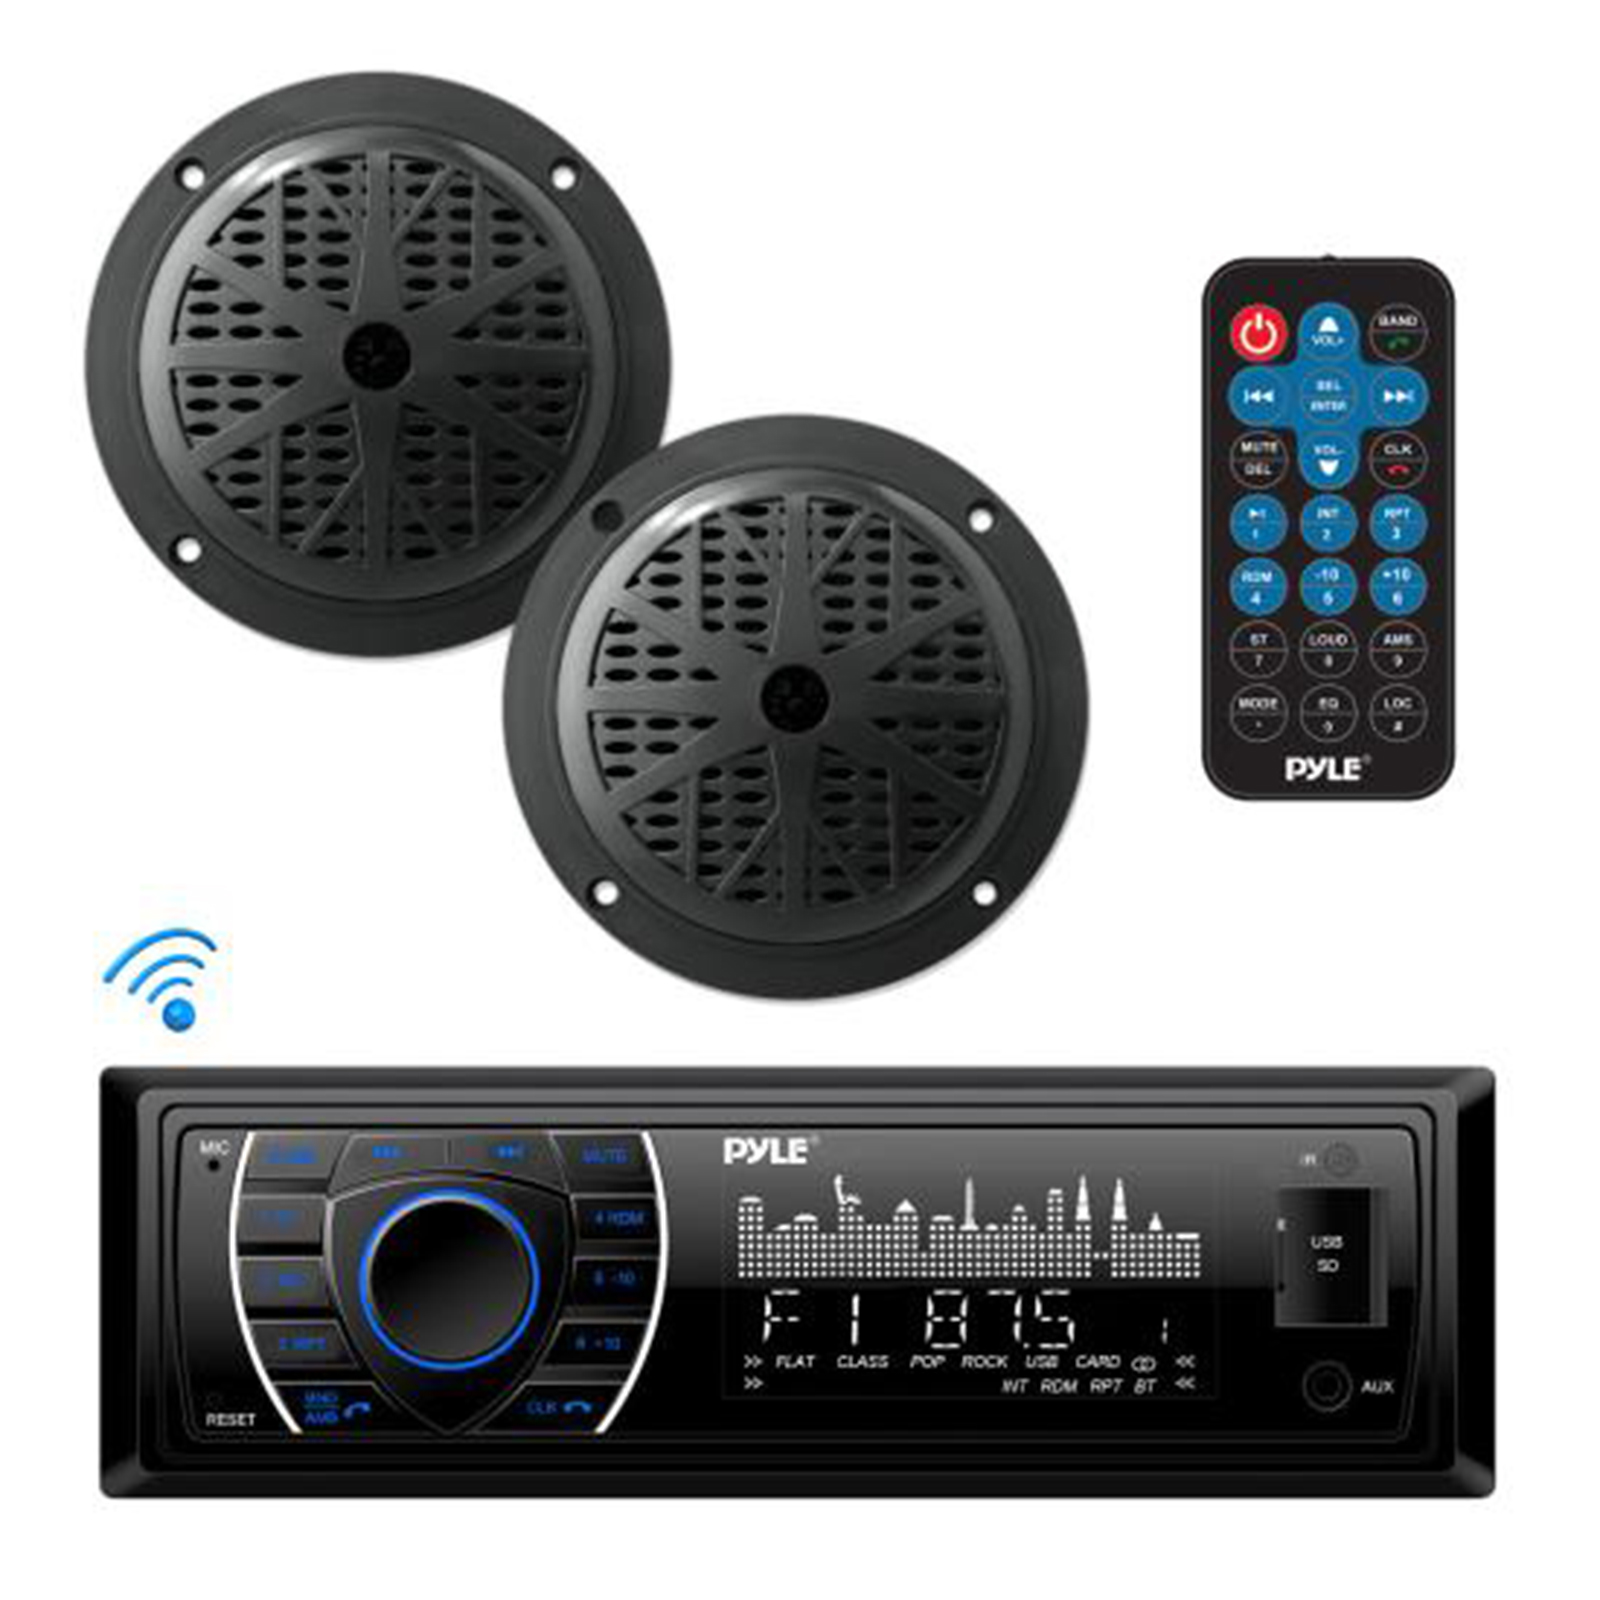 Car Audio BT Marine Receiver Stereo  Speaker Kit, Hands-Free Calling, Streaming, MP3/USB/SD Readers, AM/FM Radio, (2) 5.25